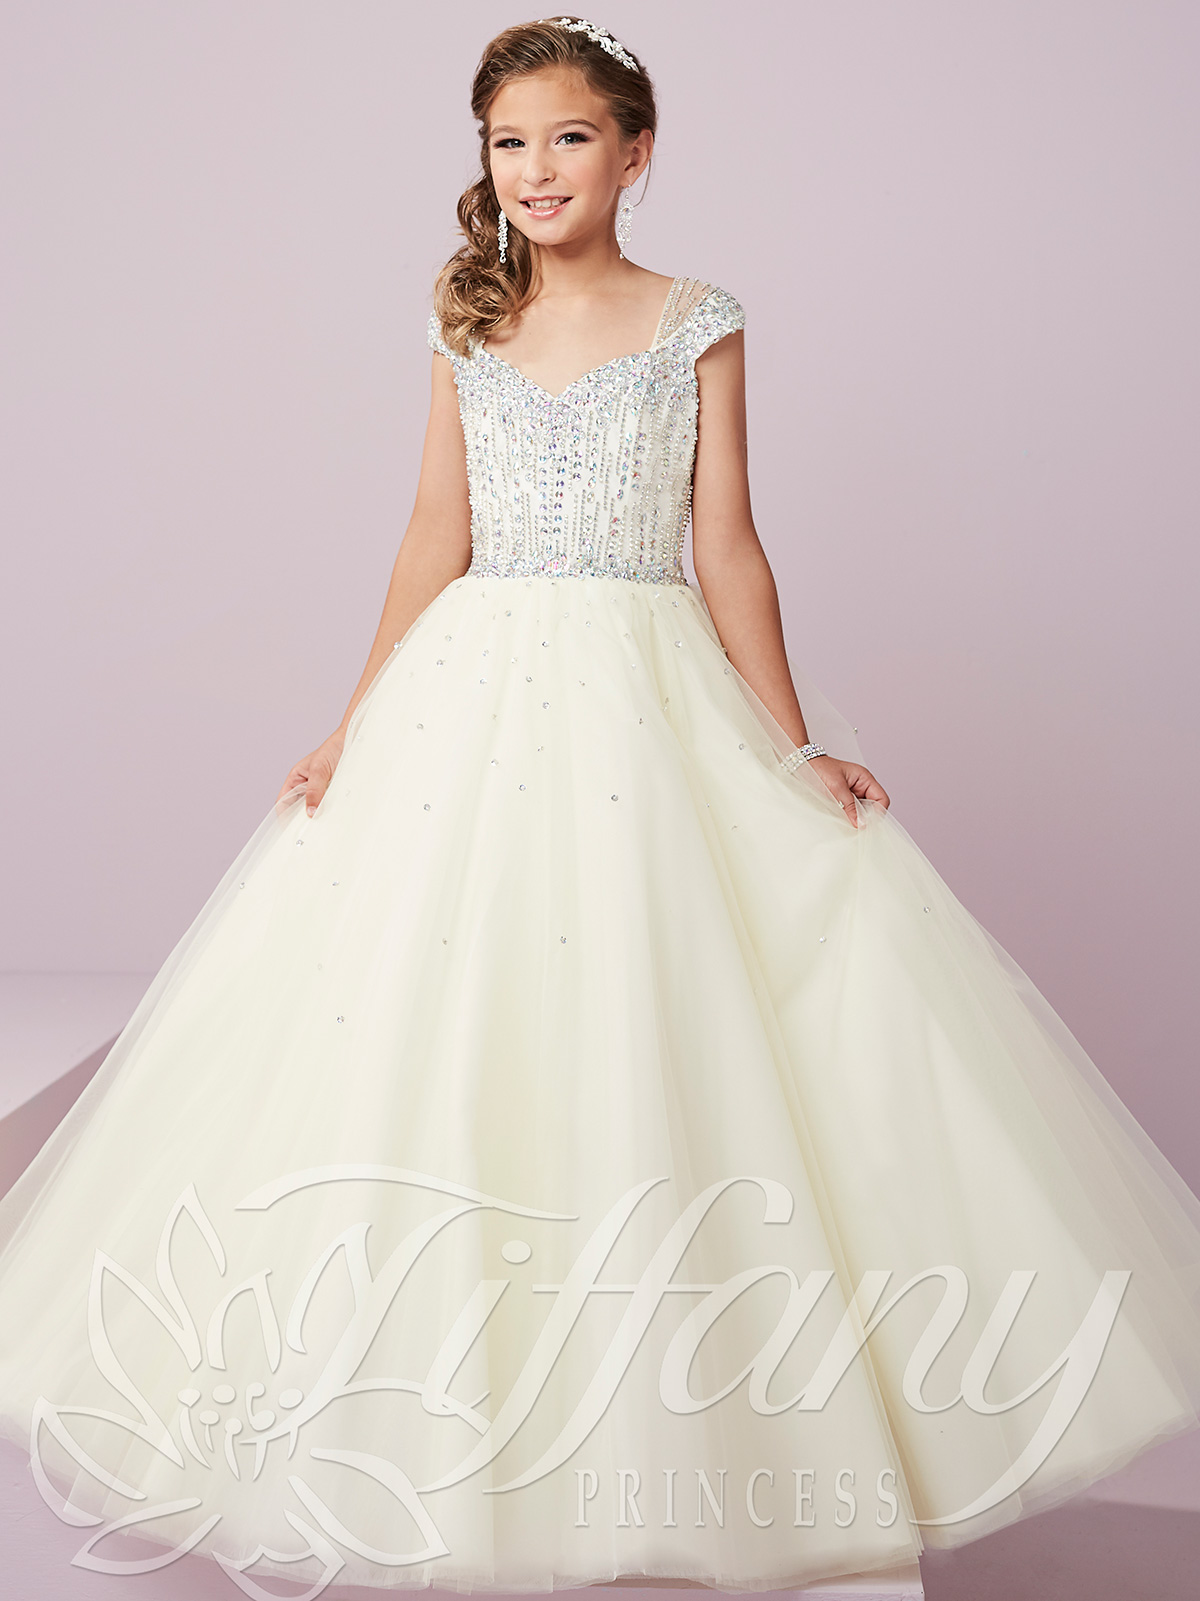 Tiffany Princess 13493 Cap Sleeved Pageant Gown|PageantDesigns.com